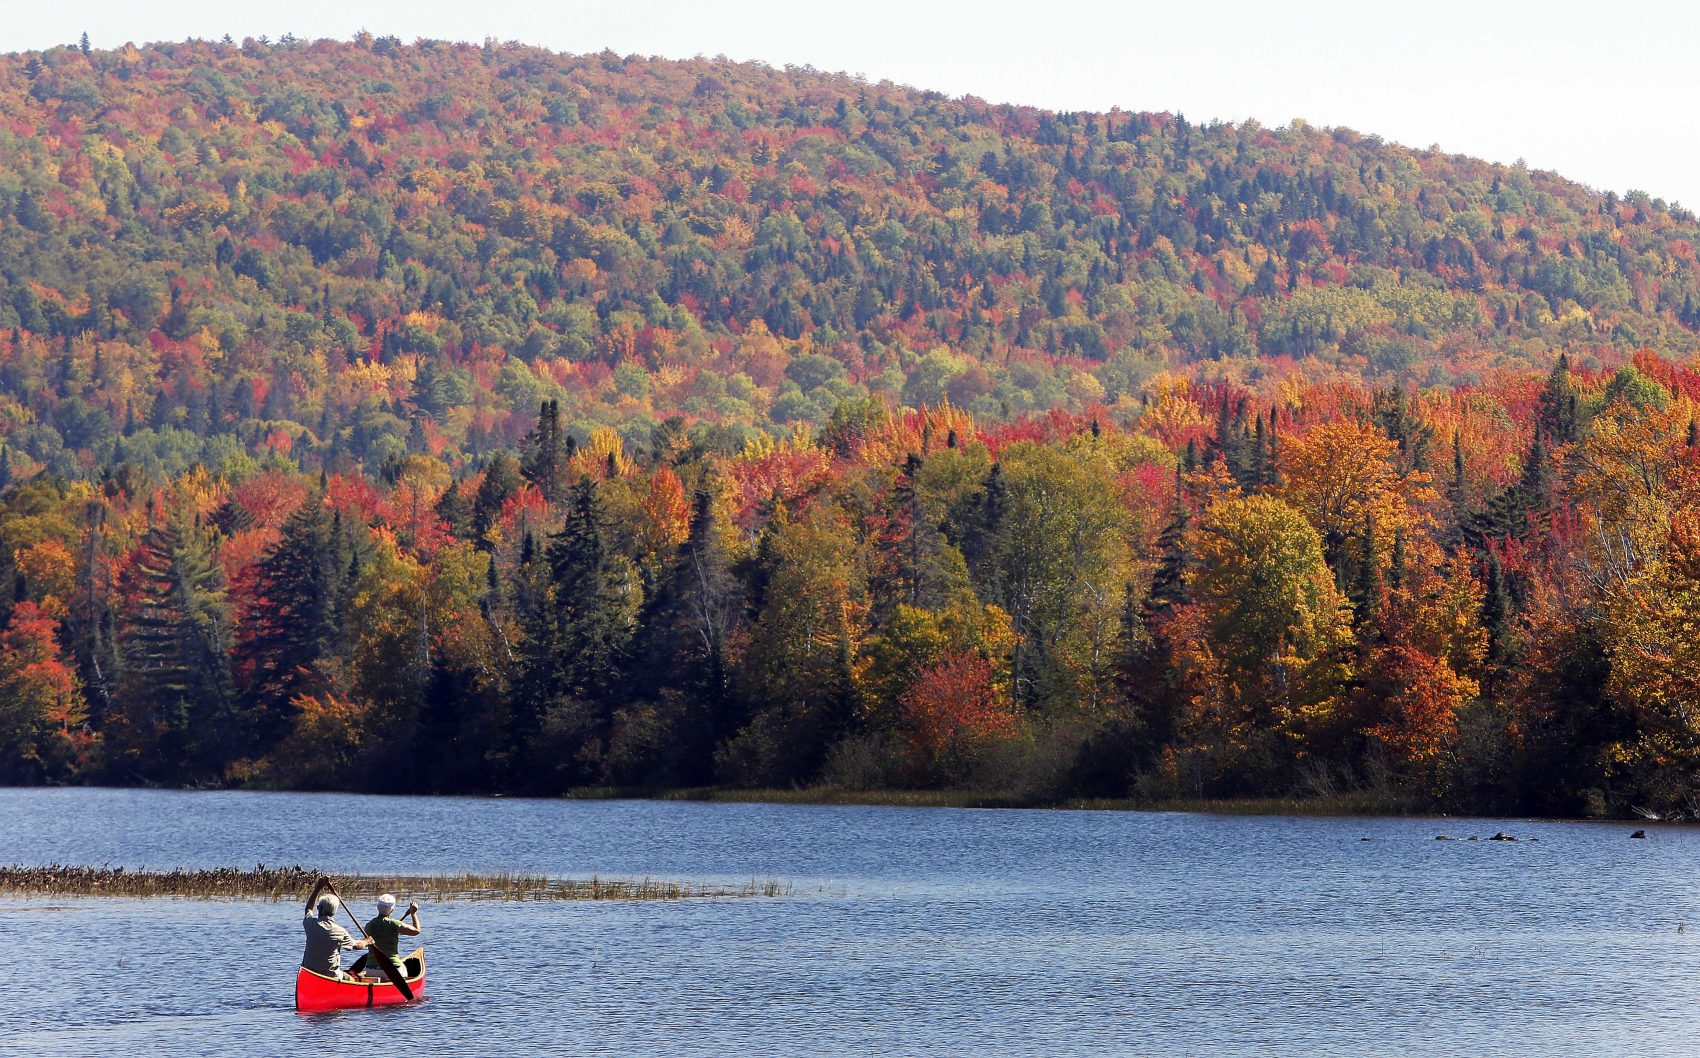 The Androscoggin River and fall colors north of the White Mountains in Dummer, N.H. Critics of proposals to import relatively clean hydropower from Quebec into the United States worry that transmission lines will despoil New Hampshire's natural beauty with power lines. (Jim Cole/AP/File)